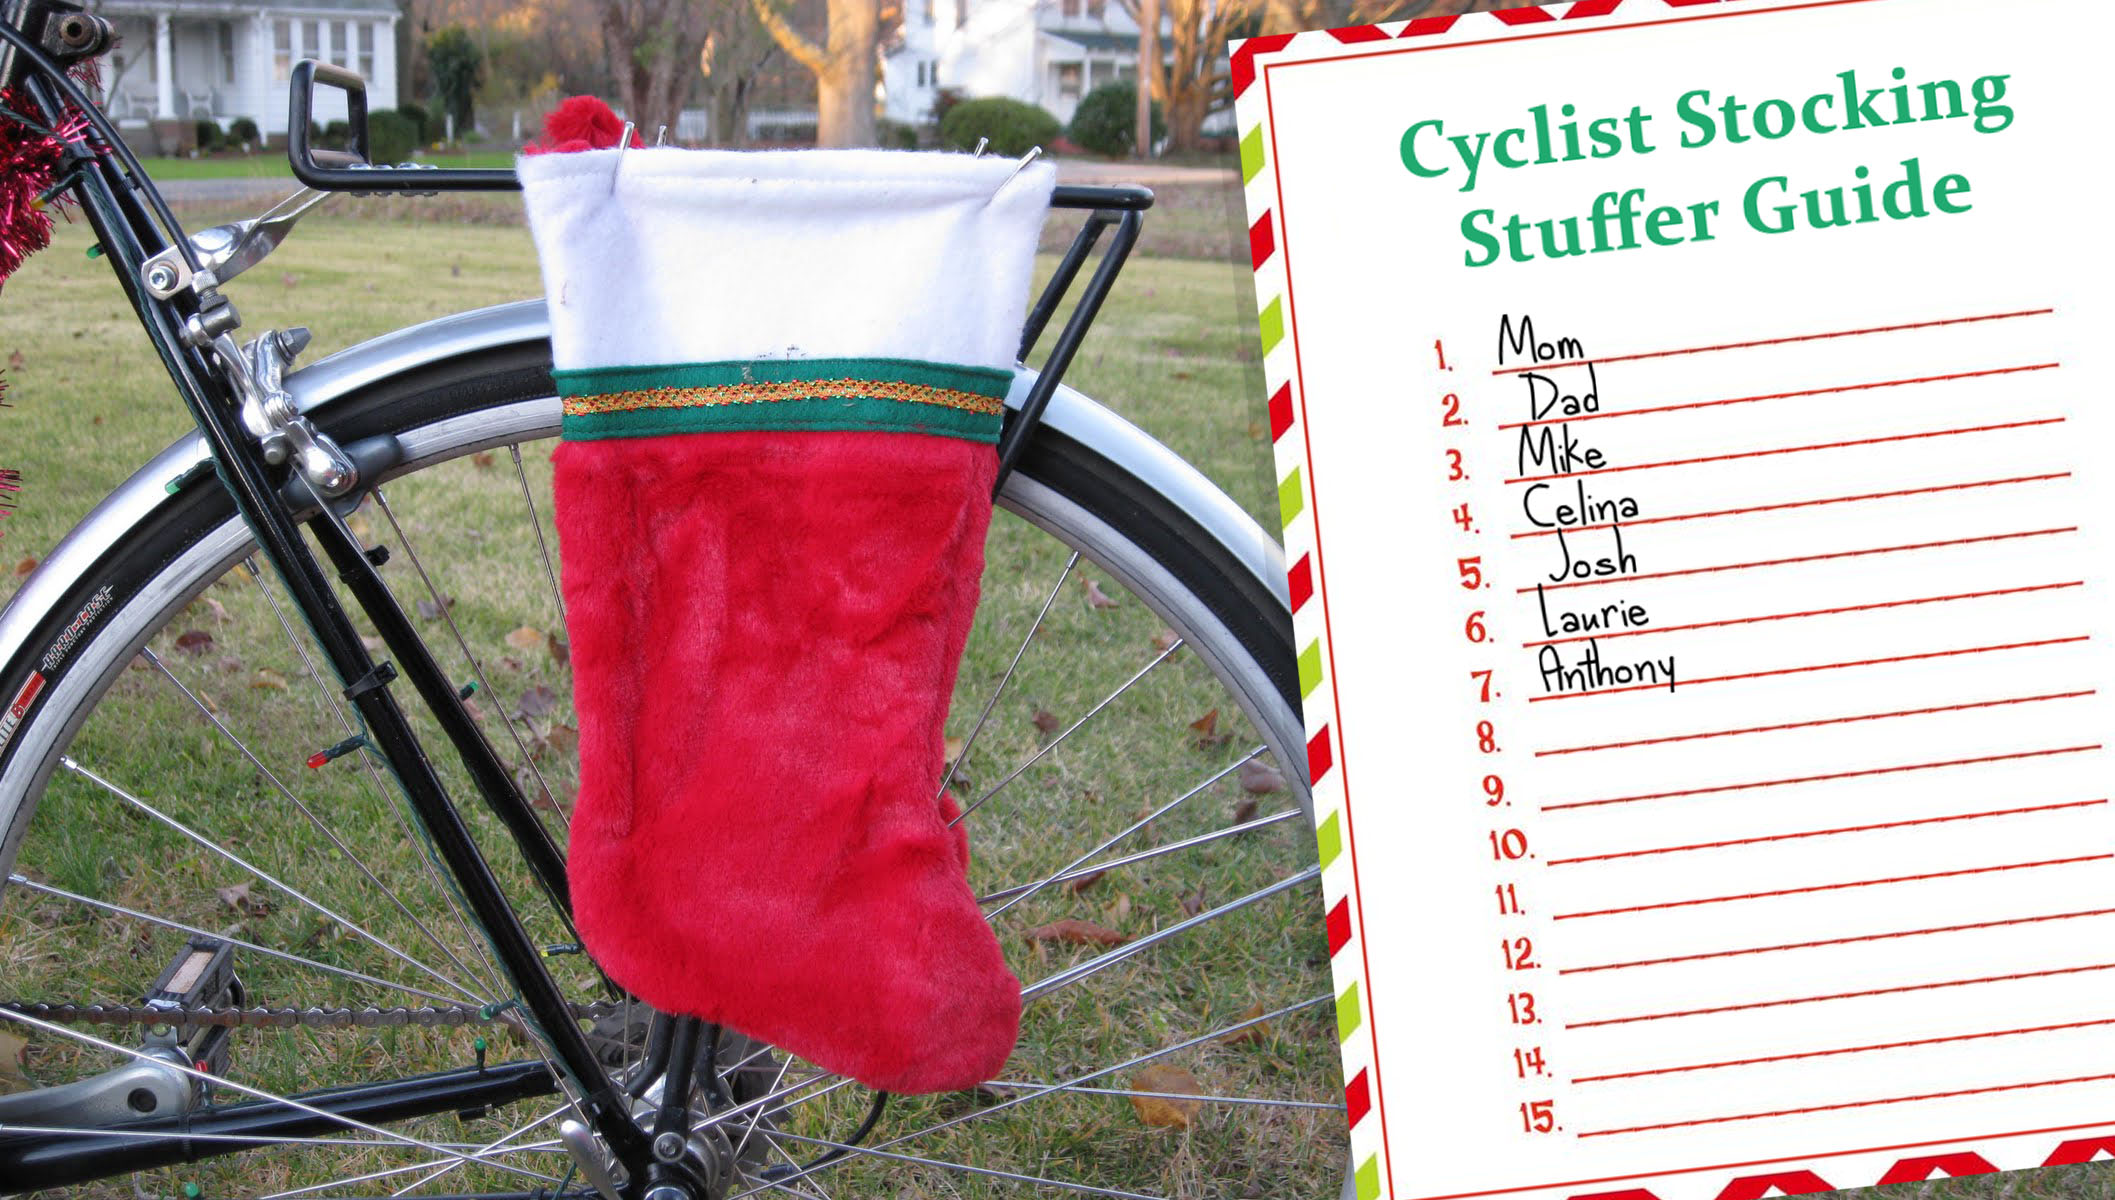 Cyclist stocking stuffer guide